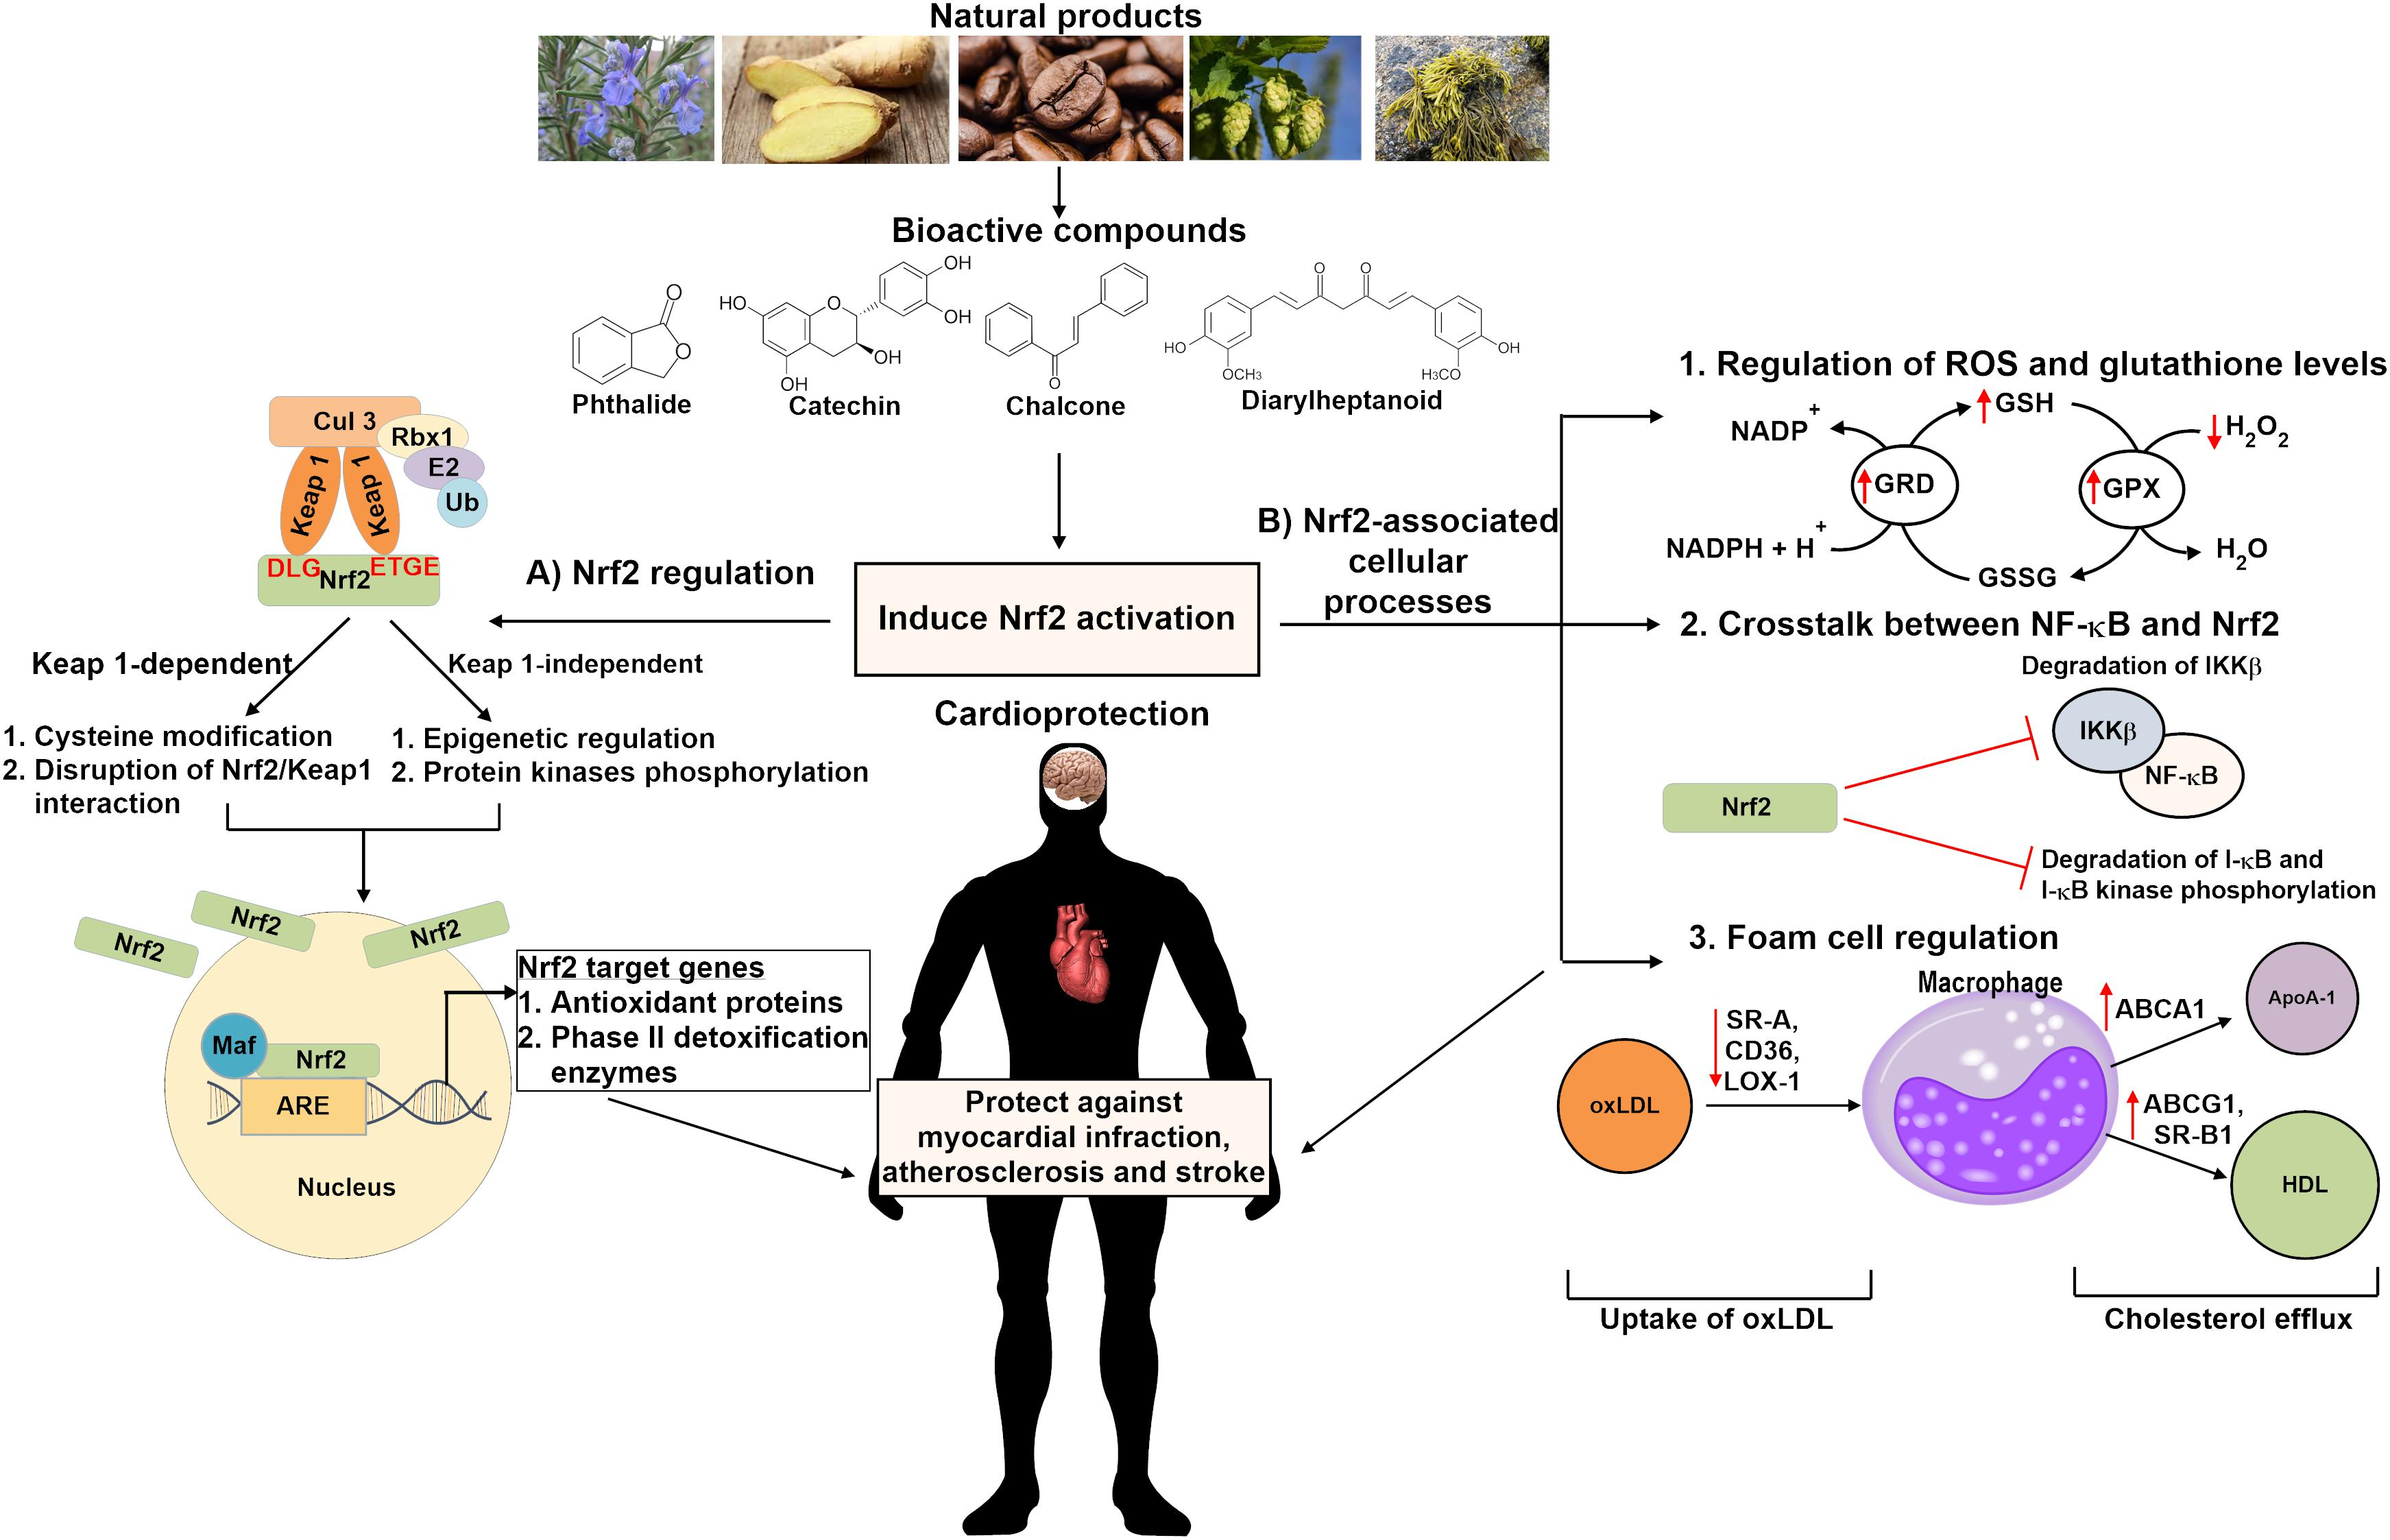 Frontiers The Role Of Natural Products In Targeting Cardiovascular Diseases Via Nrf2 Pathway Novel Molecular Mechanisms And Therapeutic Approaches Pharmacology